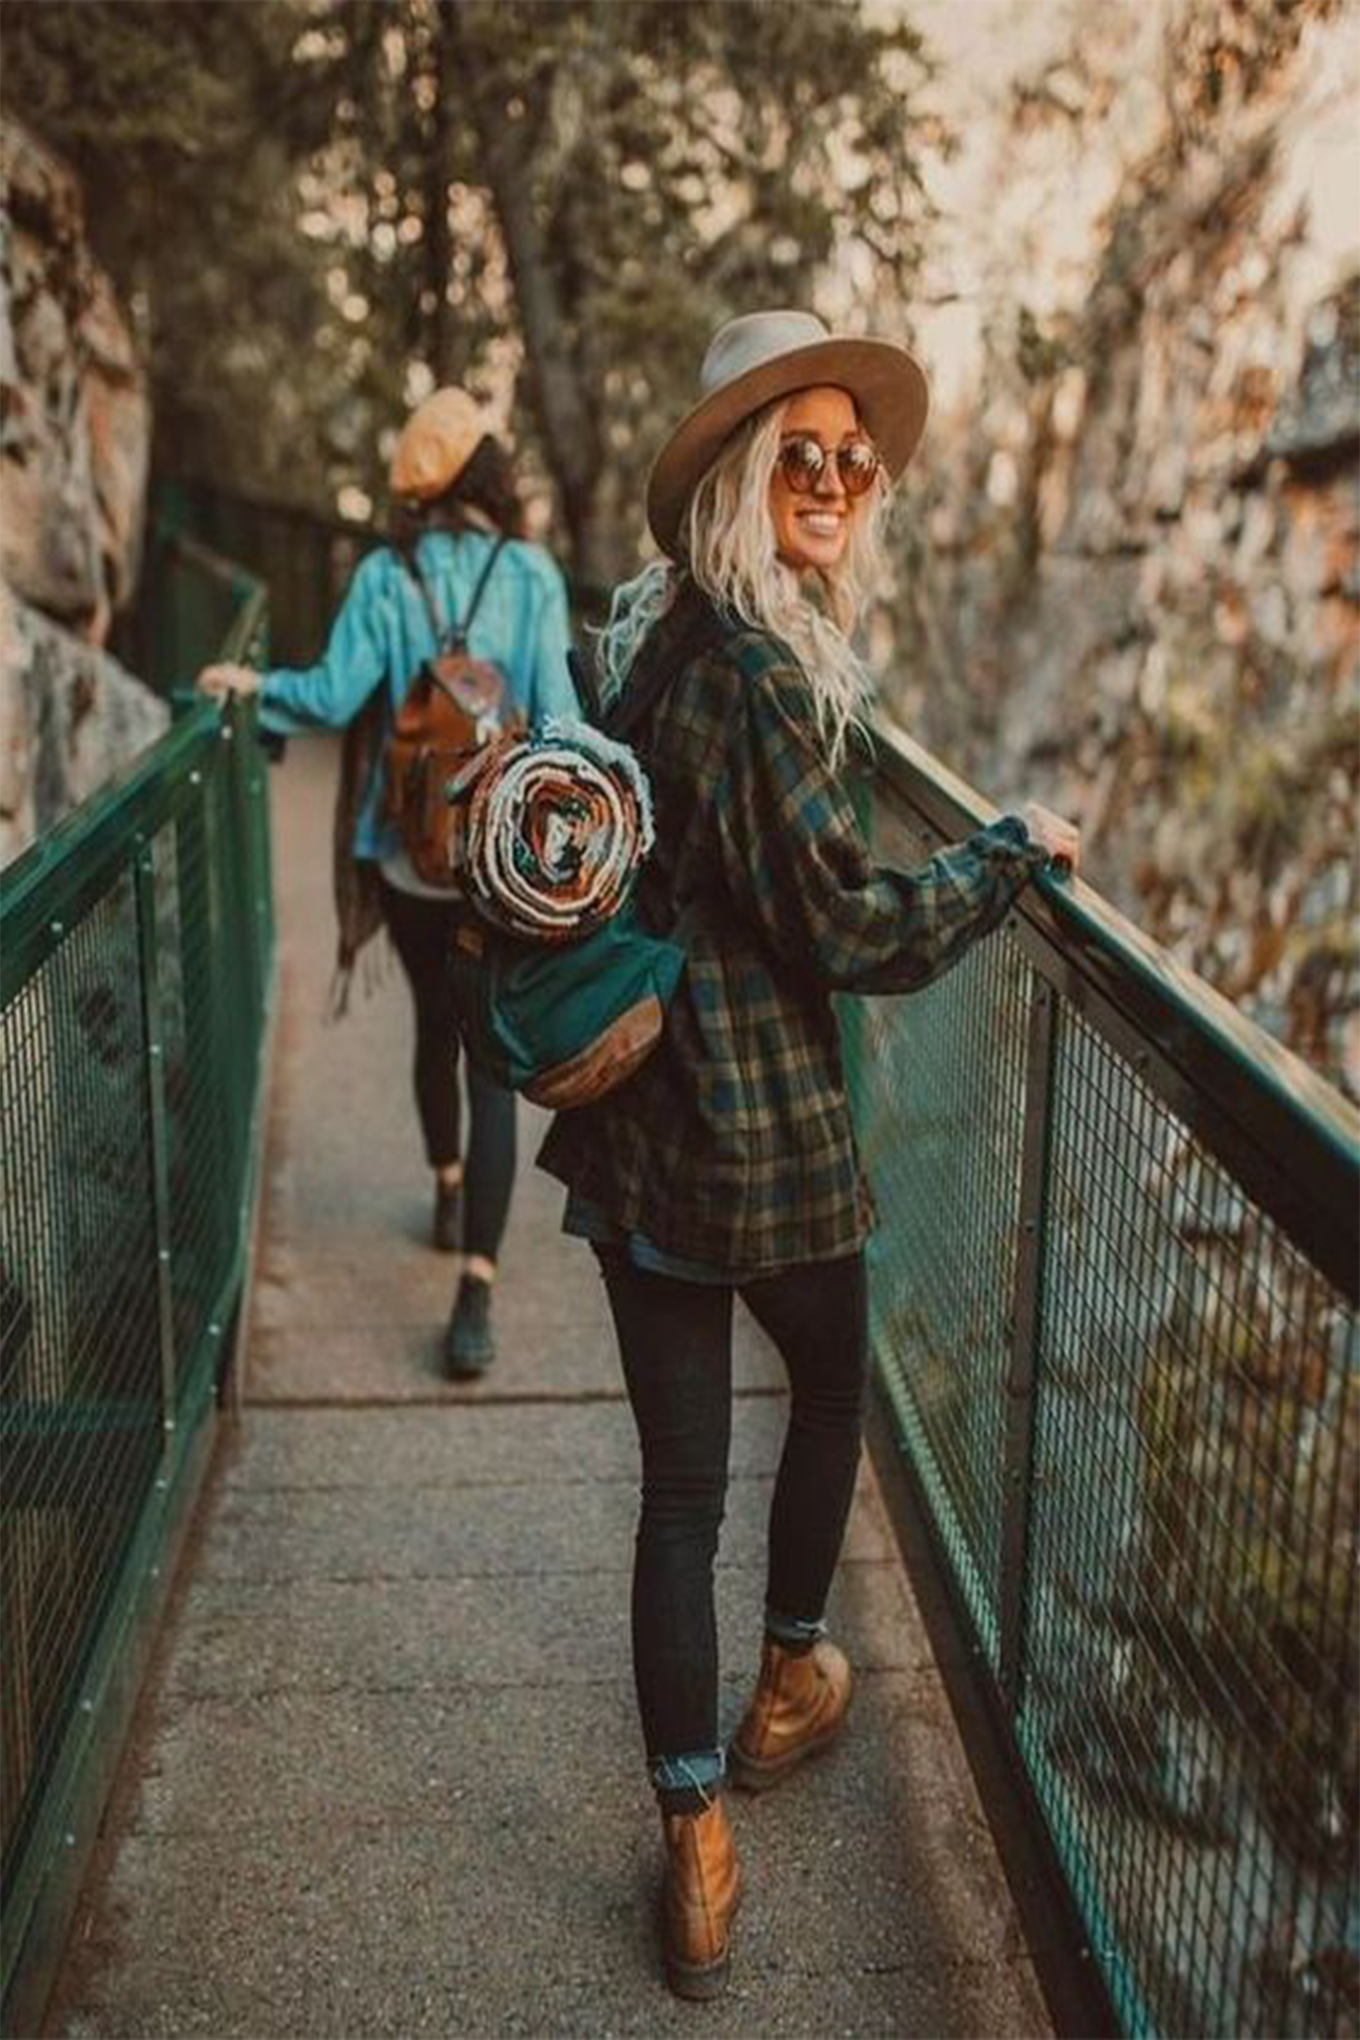 Ten Fun Things to Do in September - Organize a weekend hike with your gals